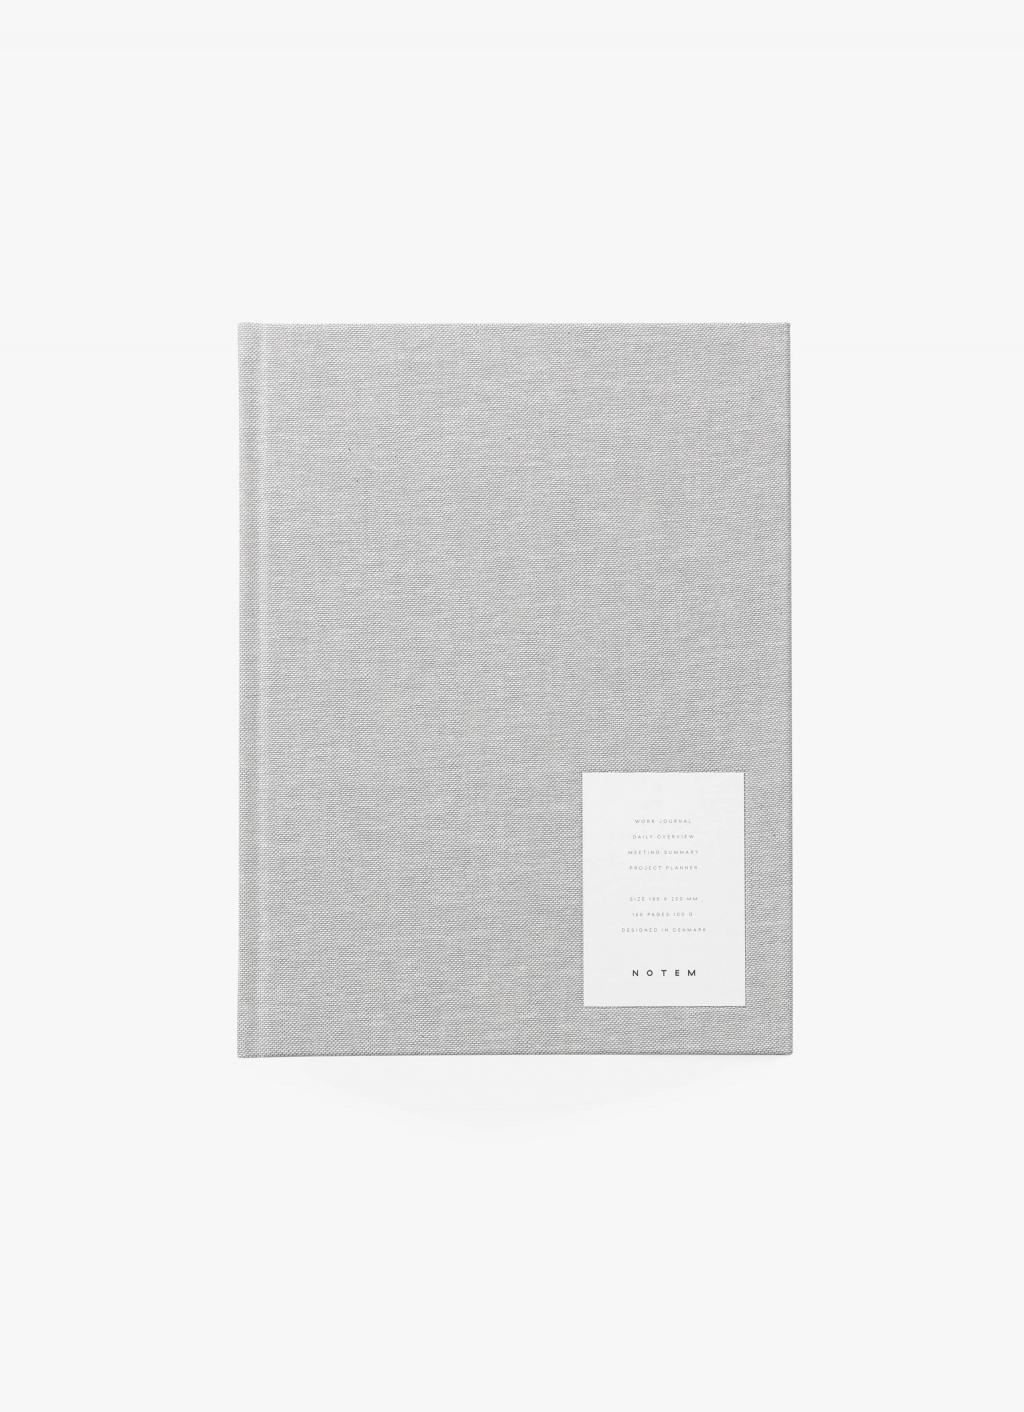 Notem - Even Work Journal - Grey Cloth